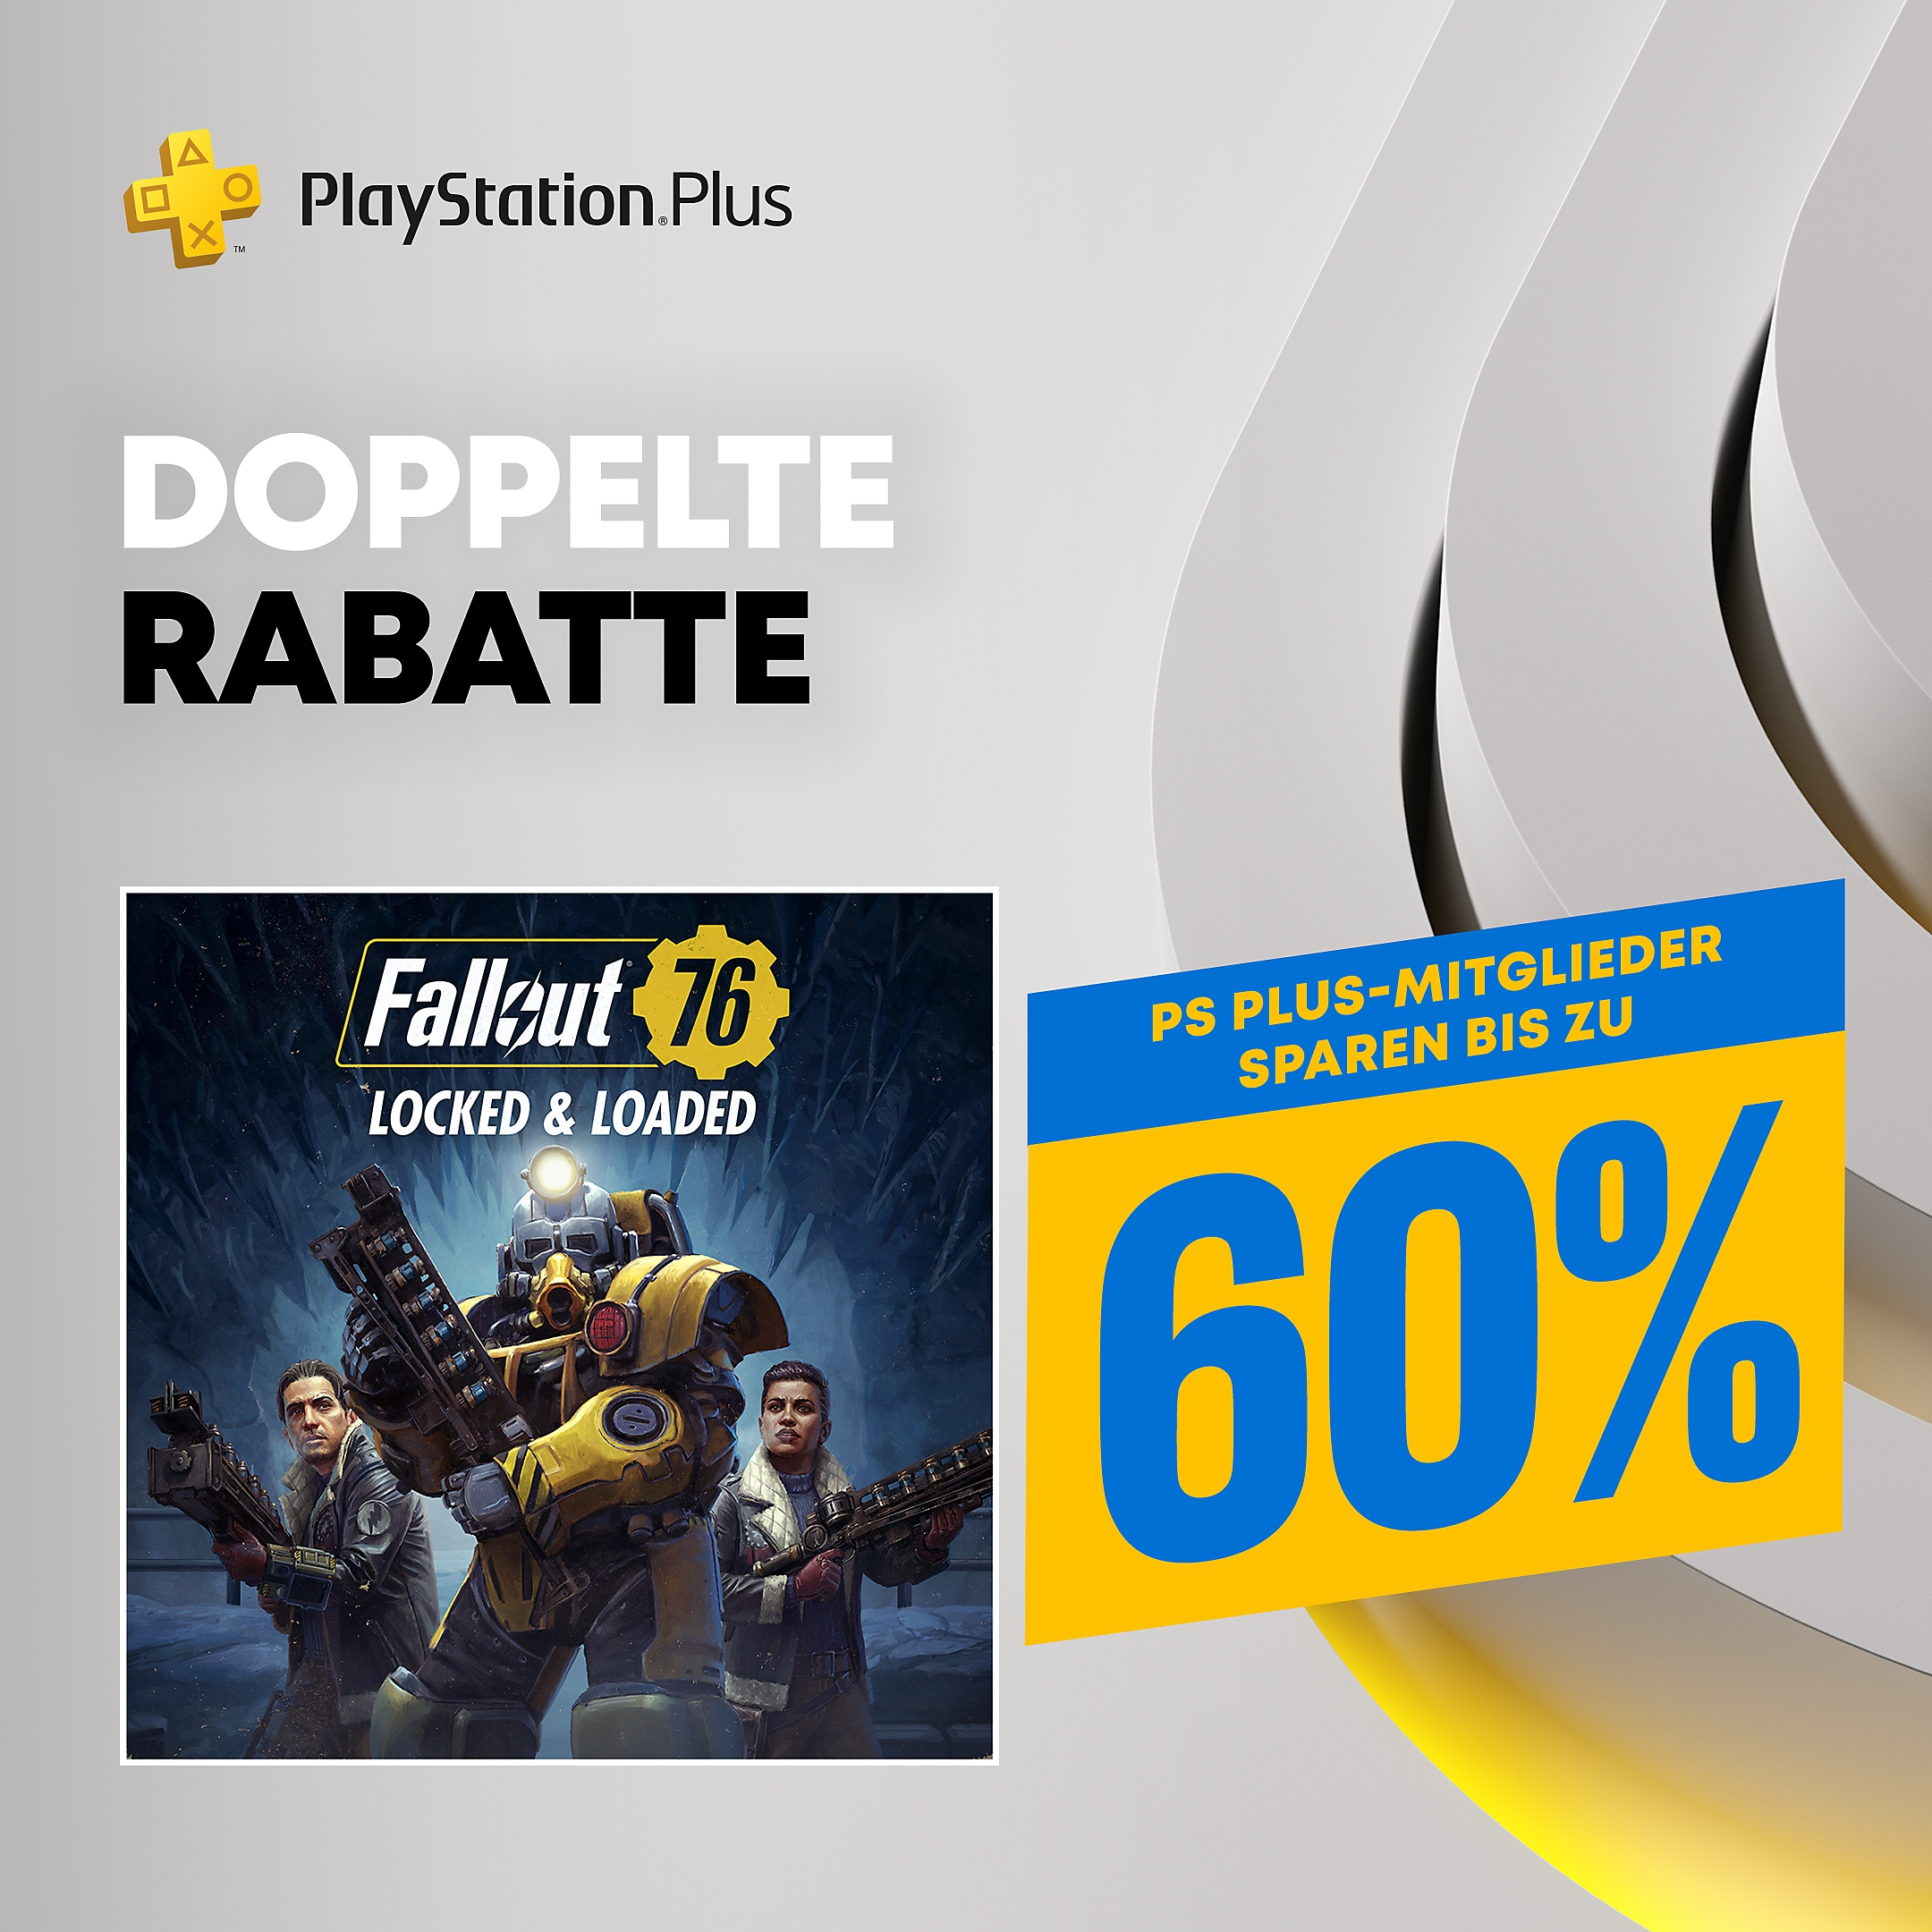 PlayStation Store - PS Plus Double Discounts